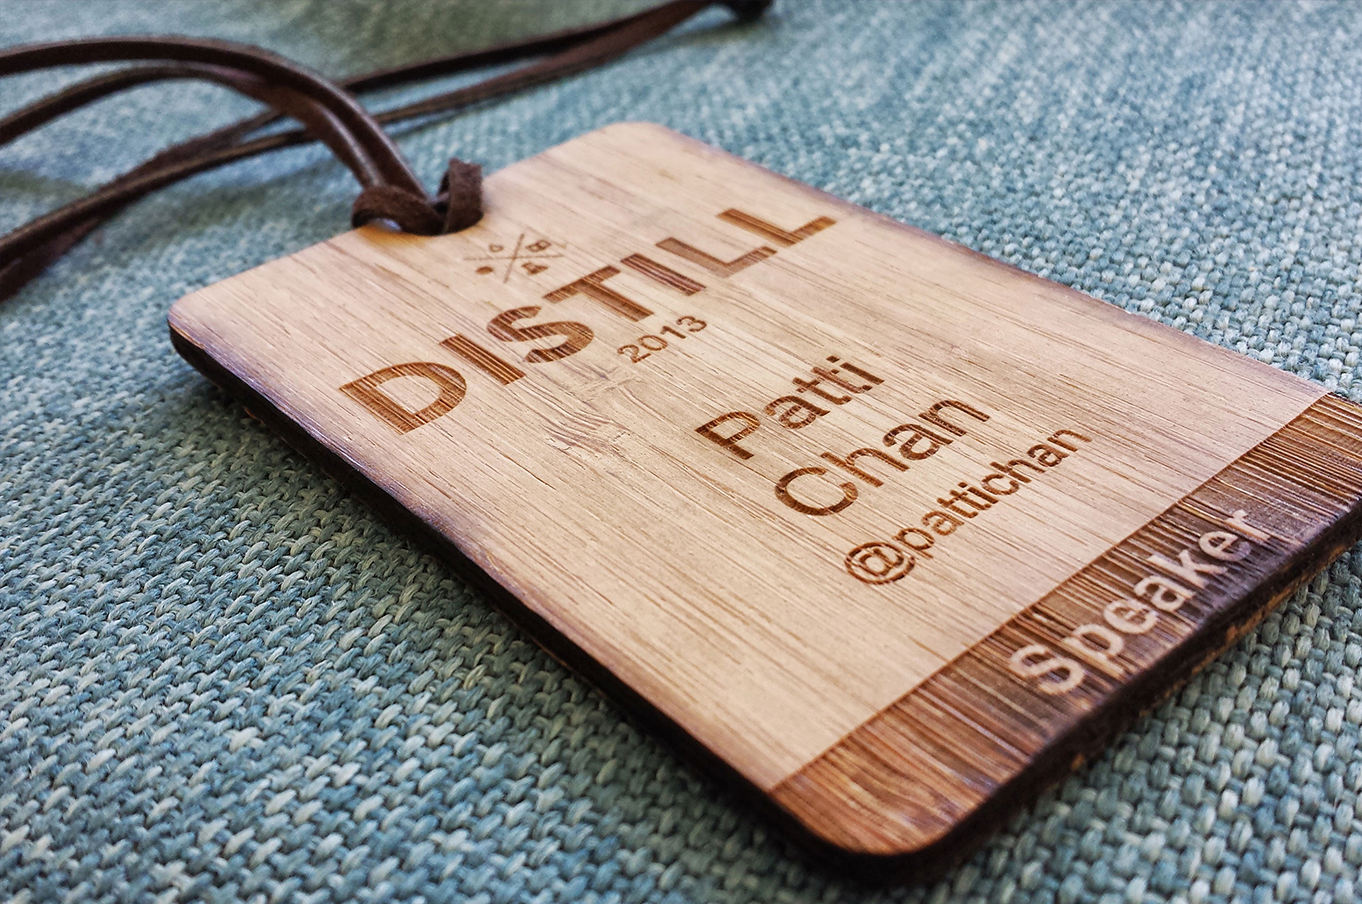 Patti Chan Talks Fitbit, Github and R at Distill